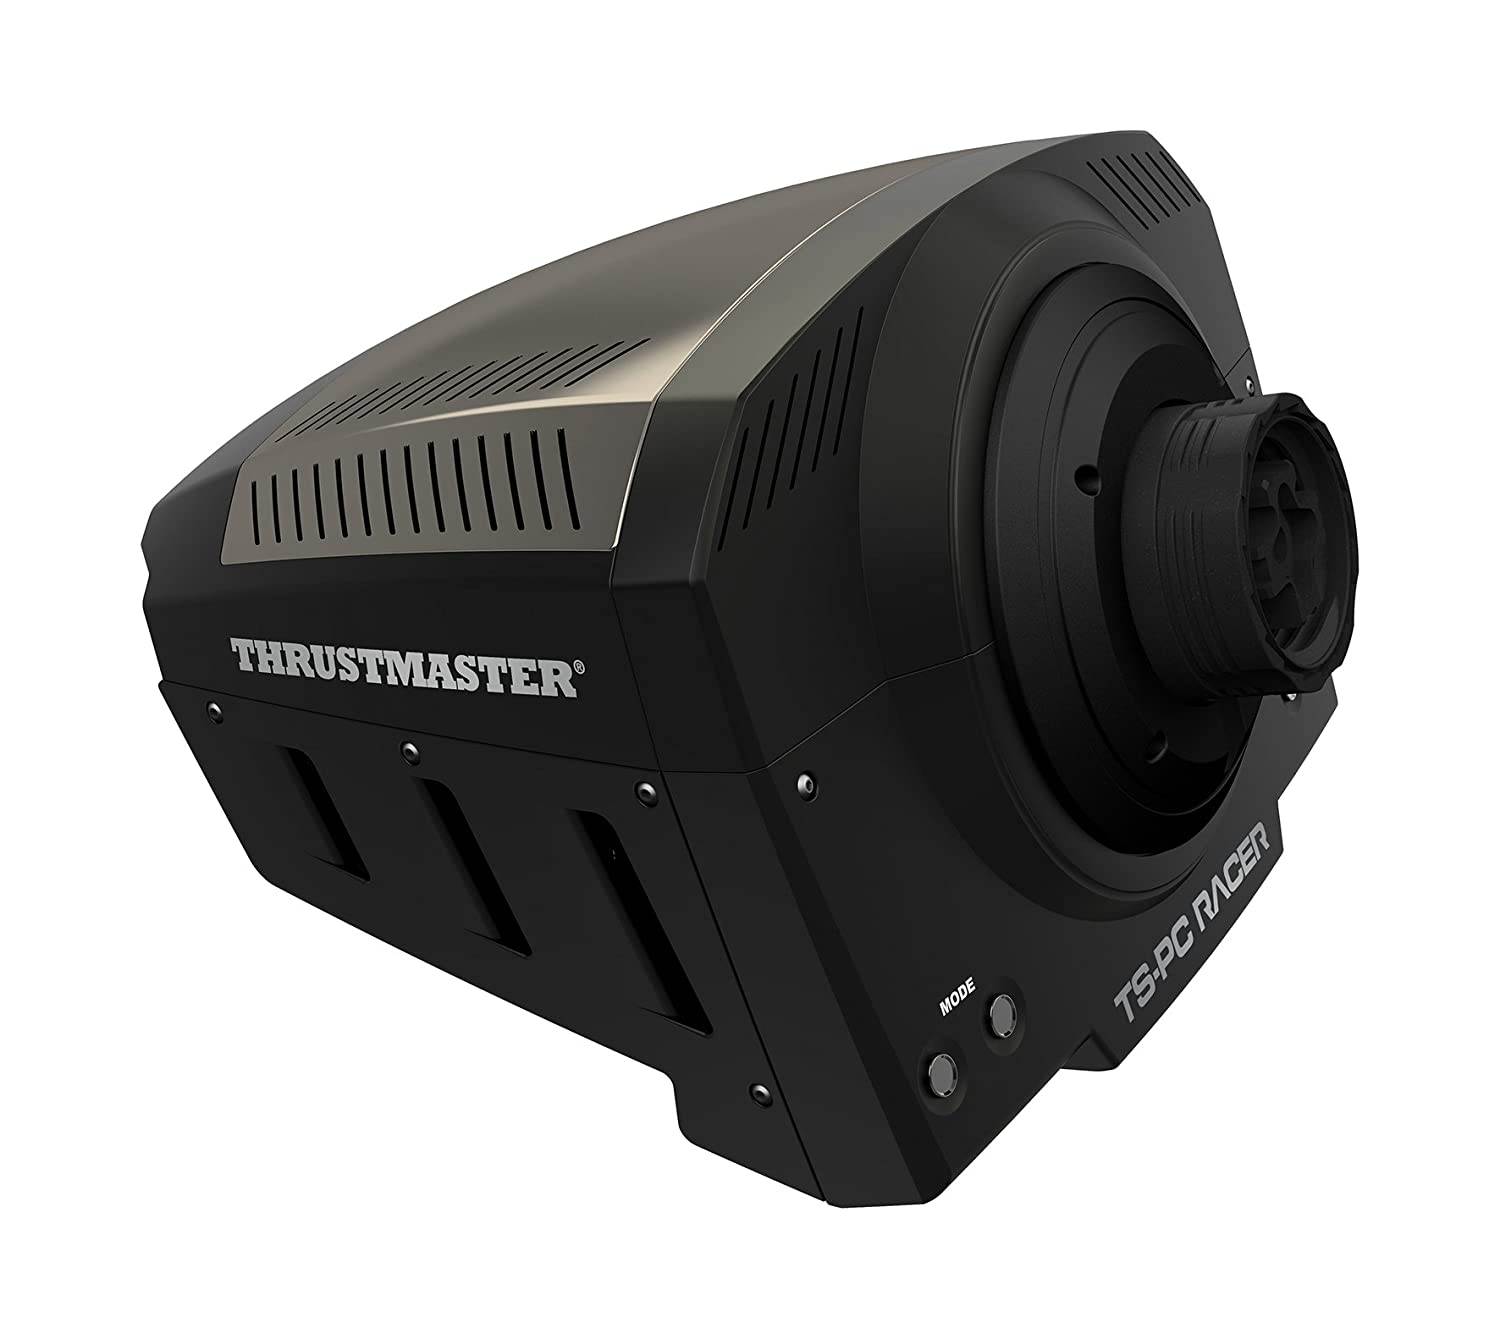 Thrustmaster Ts Pc Racer Computers Accessories Rider Sport Boxer R 383